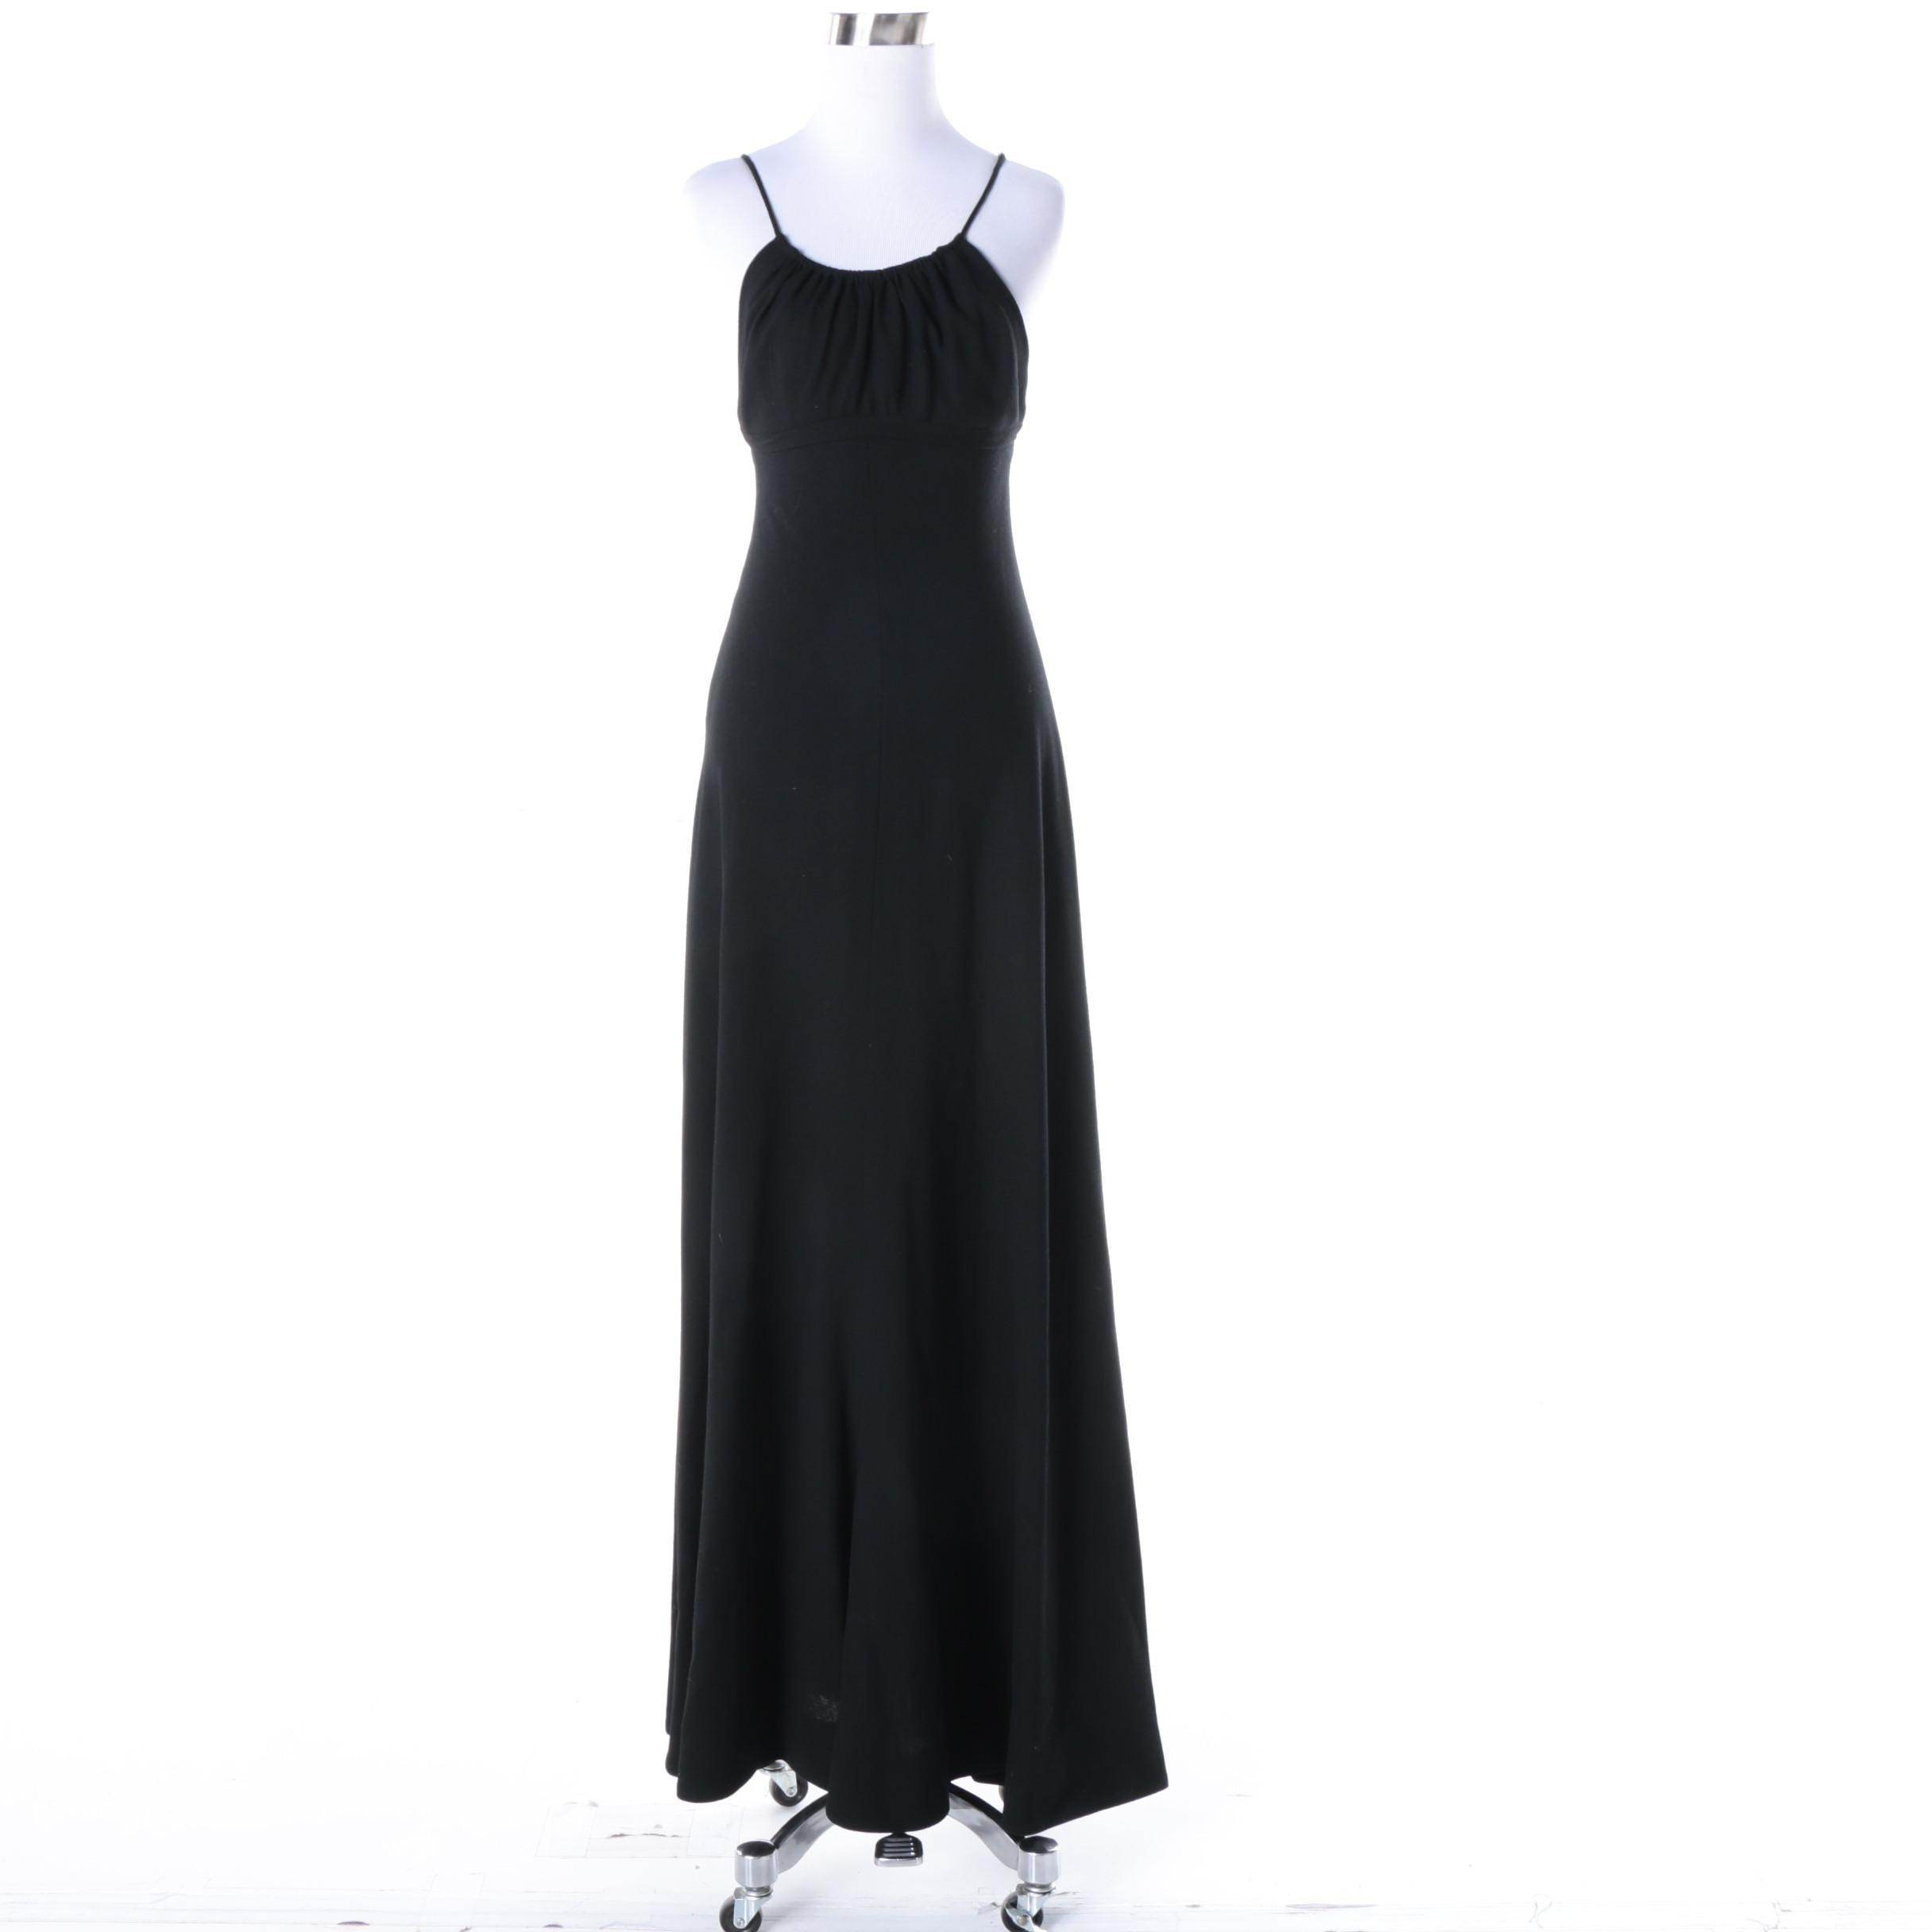 Women's Vintage Cardinali Maxi Dress